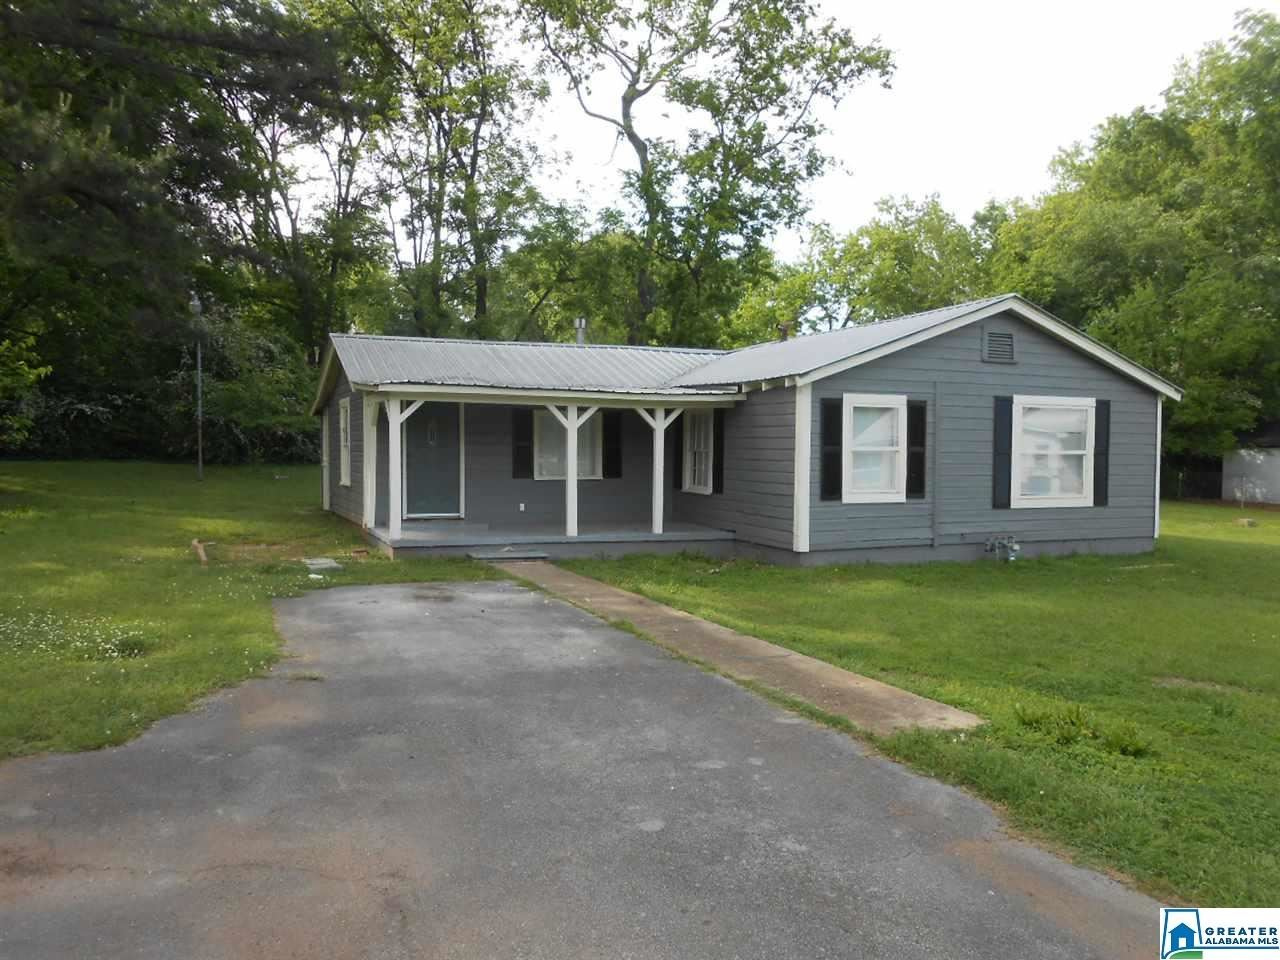 2016 29TH AVE N, Bessemer, AL 35023 - MLS#: 881971